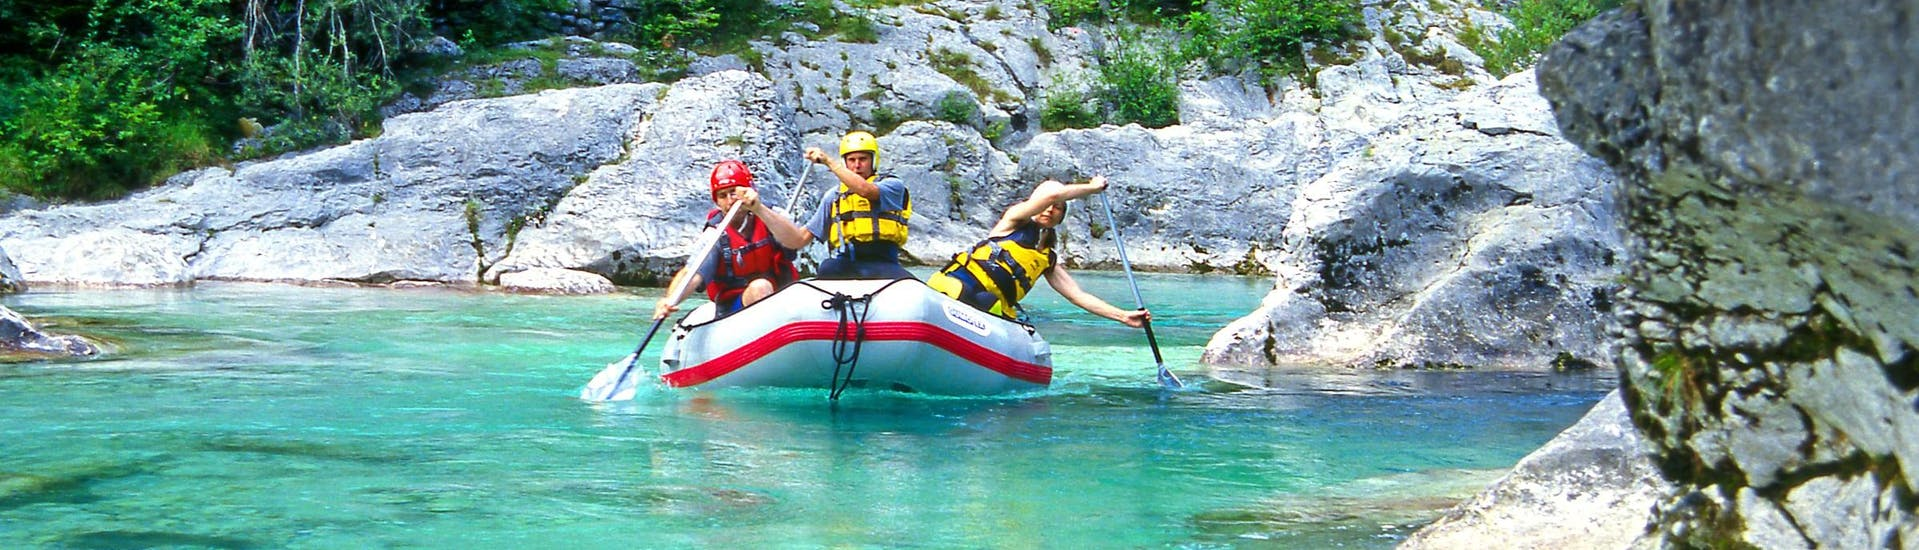 A group of young people enjoying some white water rafting fun in the rafting & canyoning hotspot of Soča Valley .